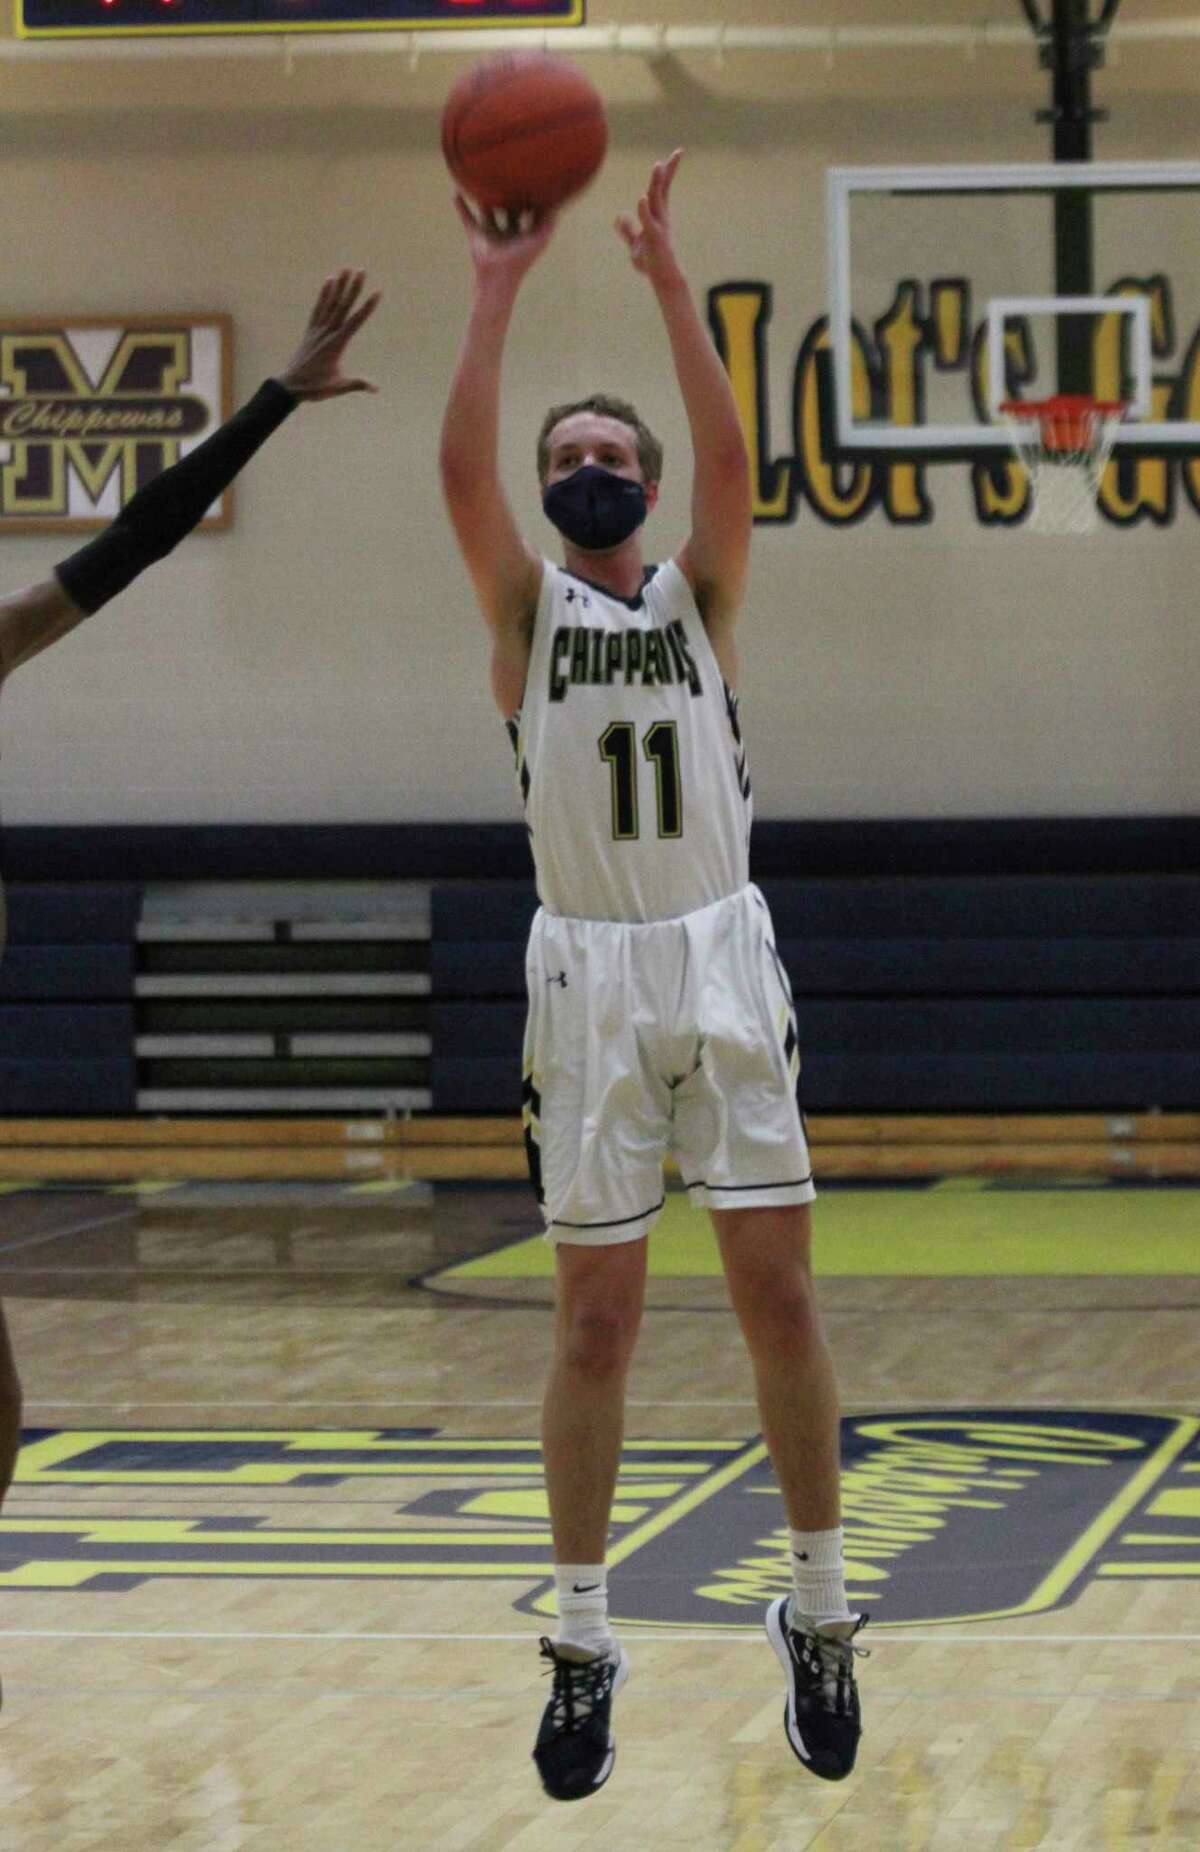 Manistee's Grant Schlaff, pictured earlier this season, had10 points with eight rebounds and four steals in Wednesday's win. (News Advocate file photo)